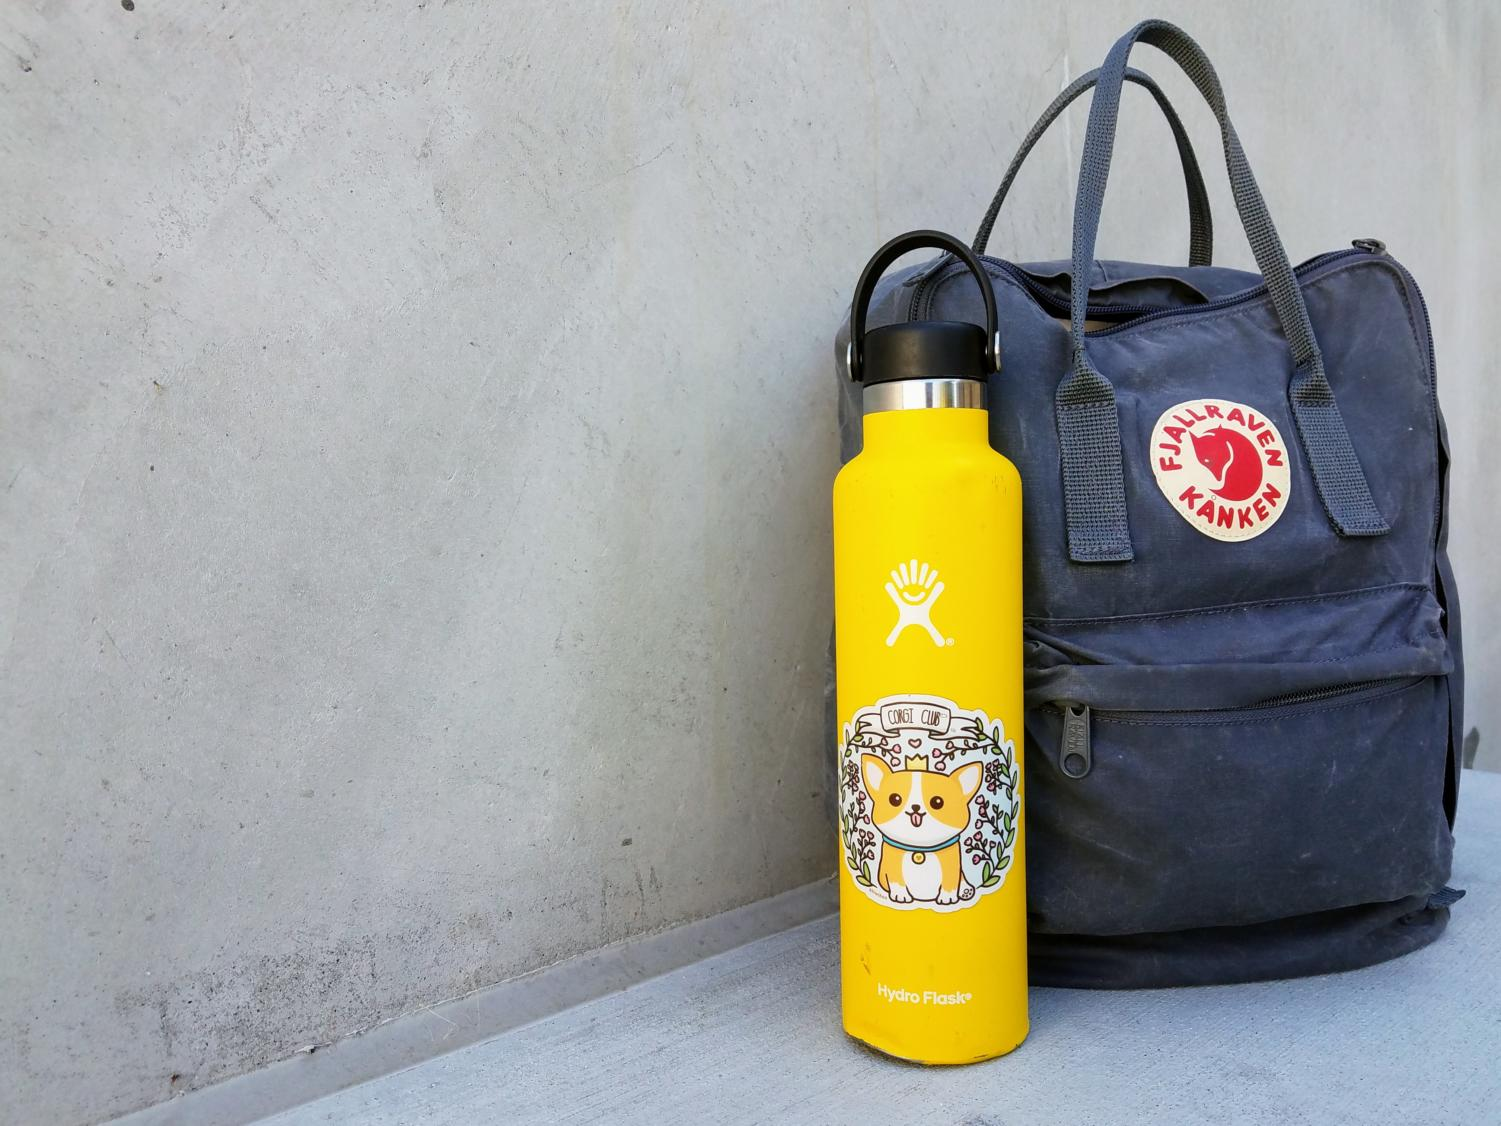 Hydro Flasks and Fjällräven backpacks are part of the ridiculed VSCO girl trend.